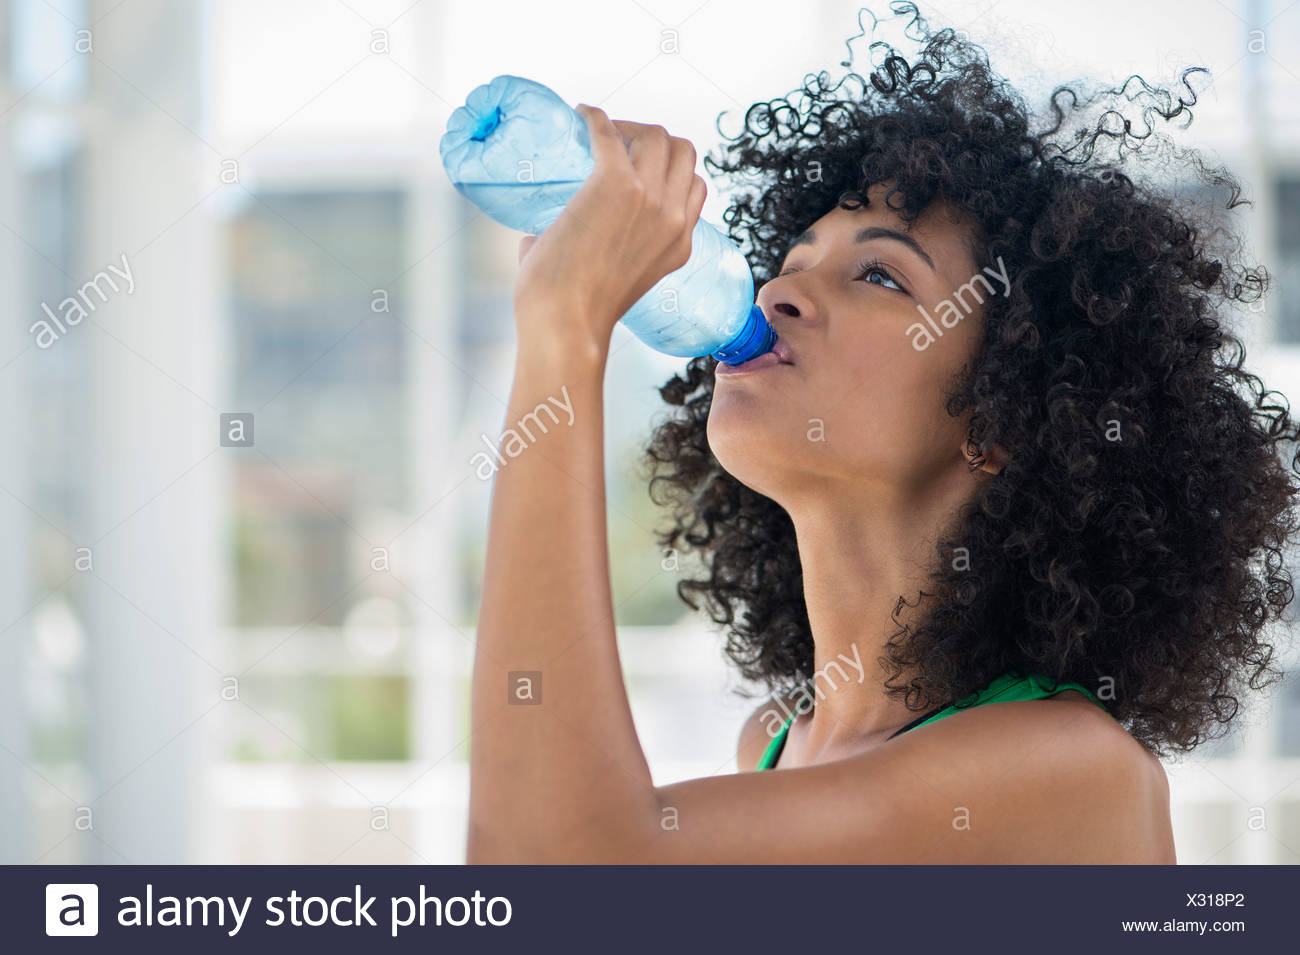 Close-up of a woman drinking water from a bottle - Stock Image